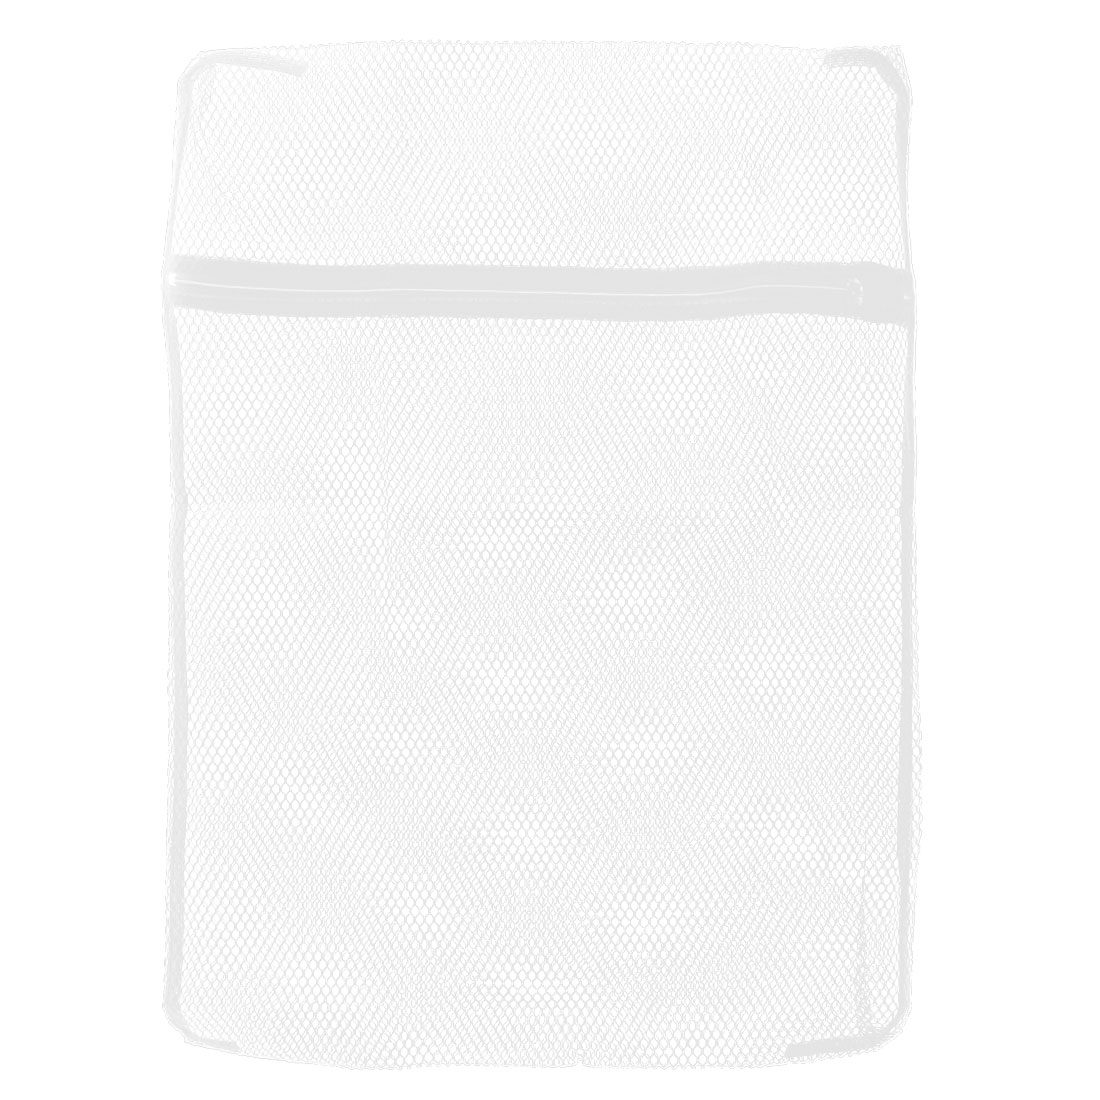 White Nylon Net Style Zippered Closure Protective Washing Bag 40 x 50cm